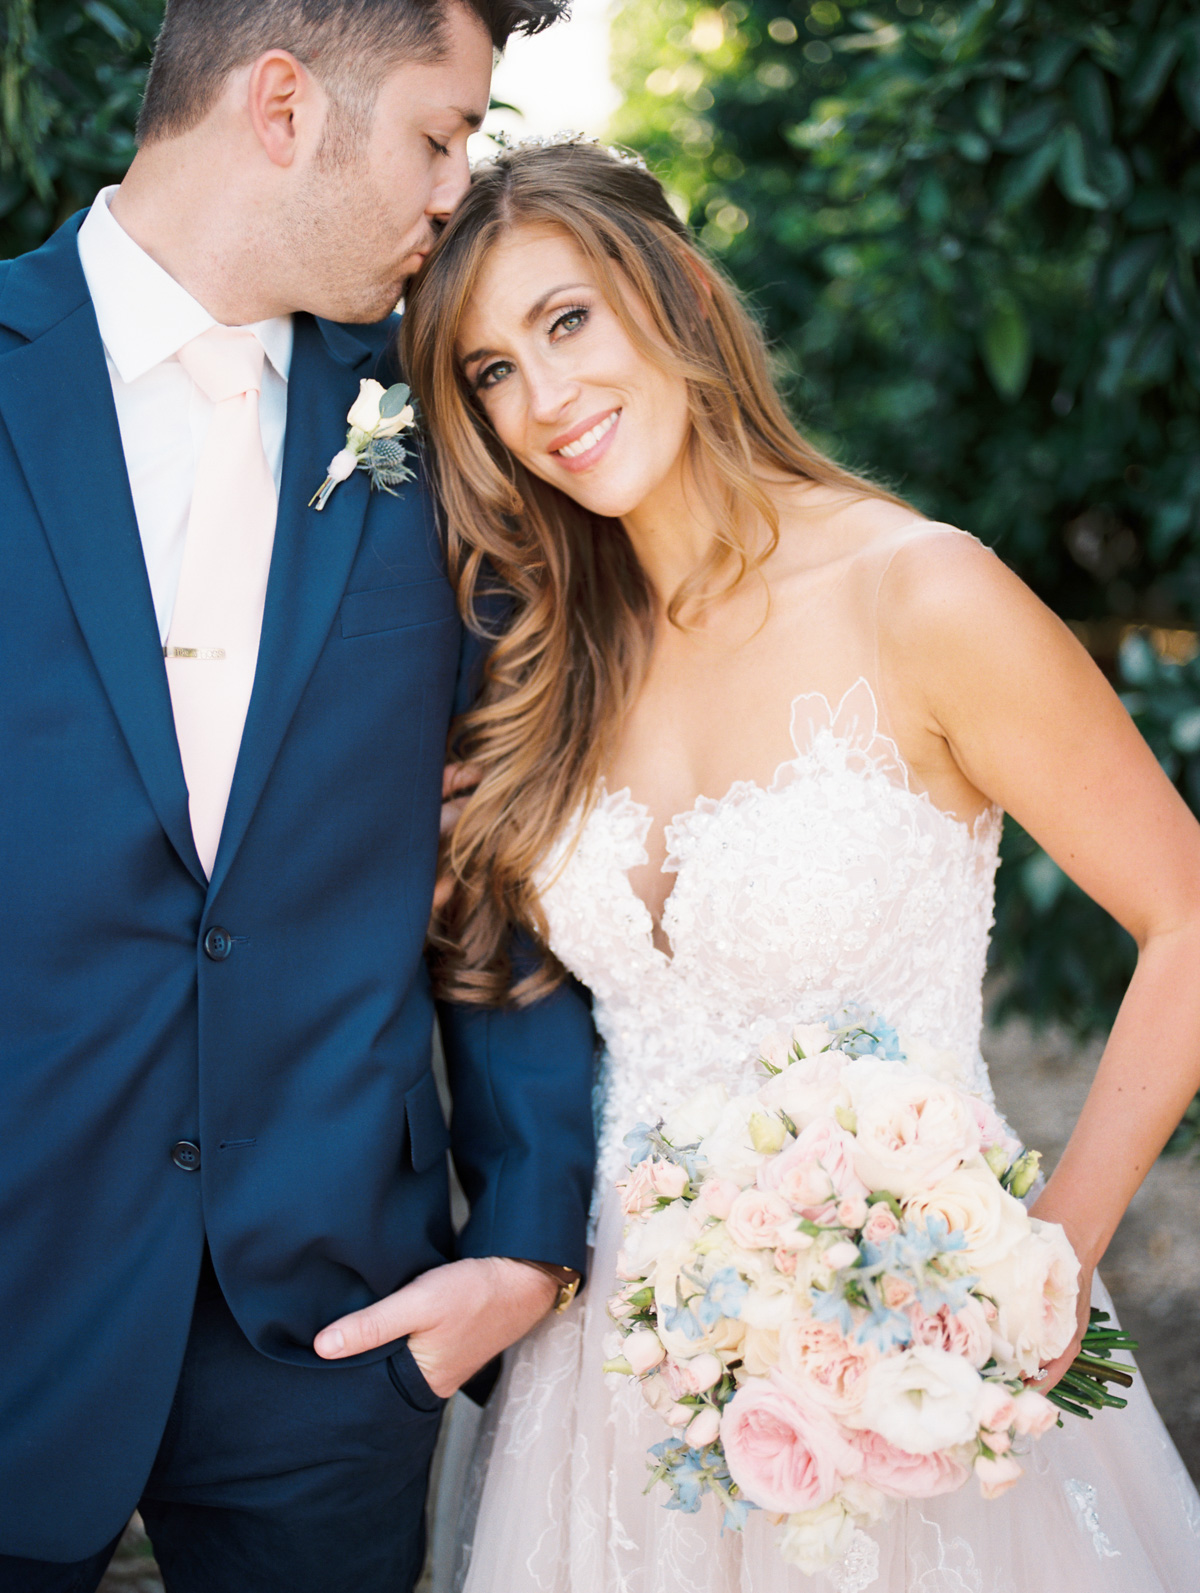 Groom kissing top of brides head |Harrison & Jocelyne's gorgeous Temecula wedding at Wiens Family Cellars captured by Betsy & John Photography | Temecula Film Photographers